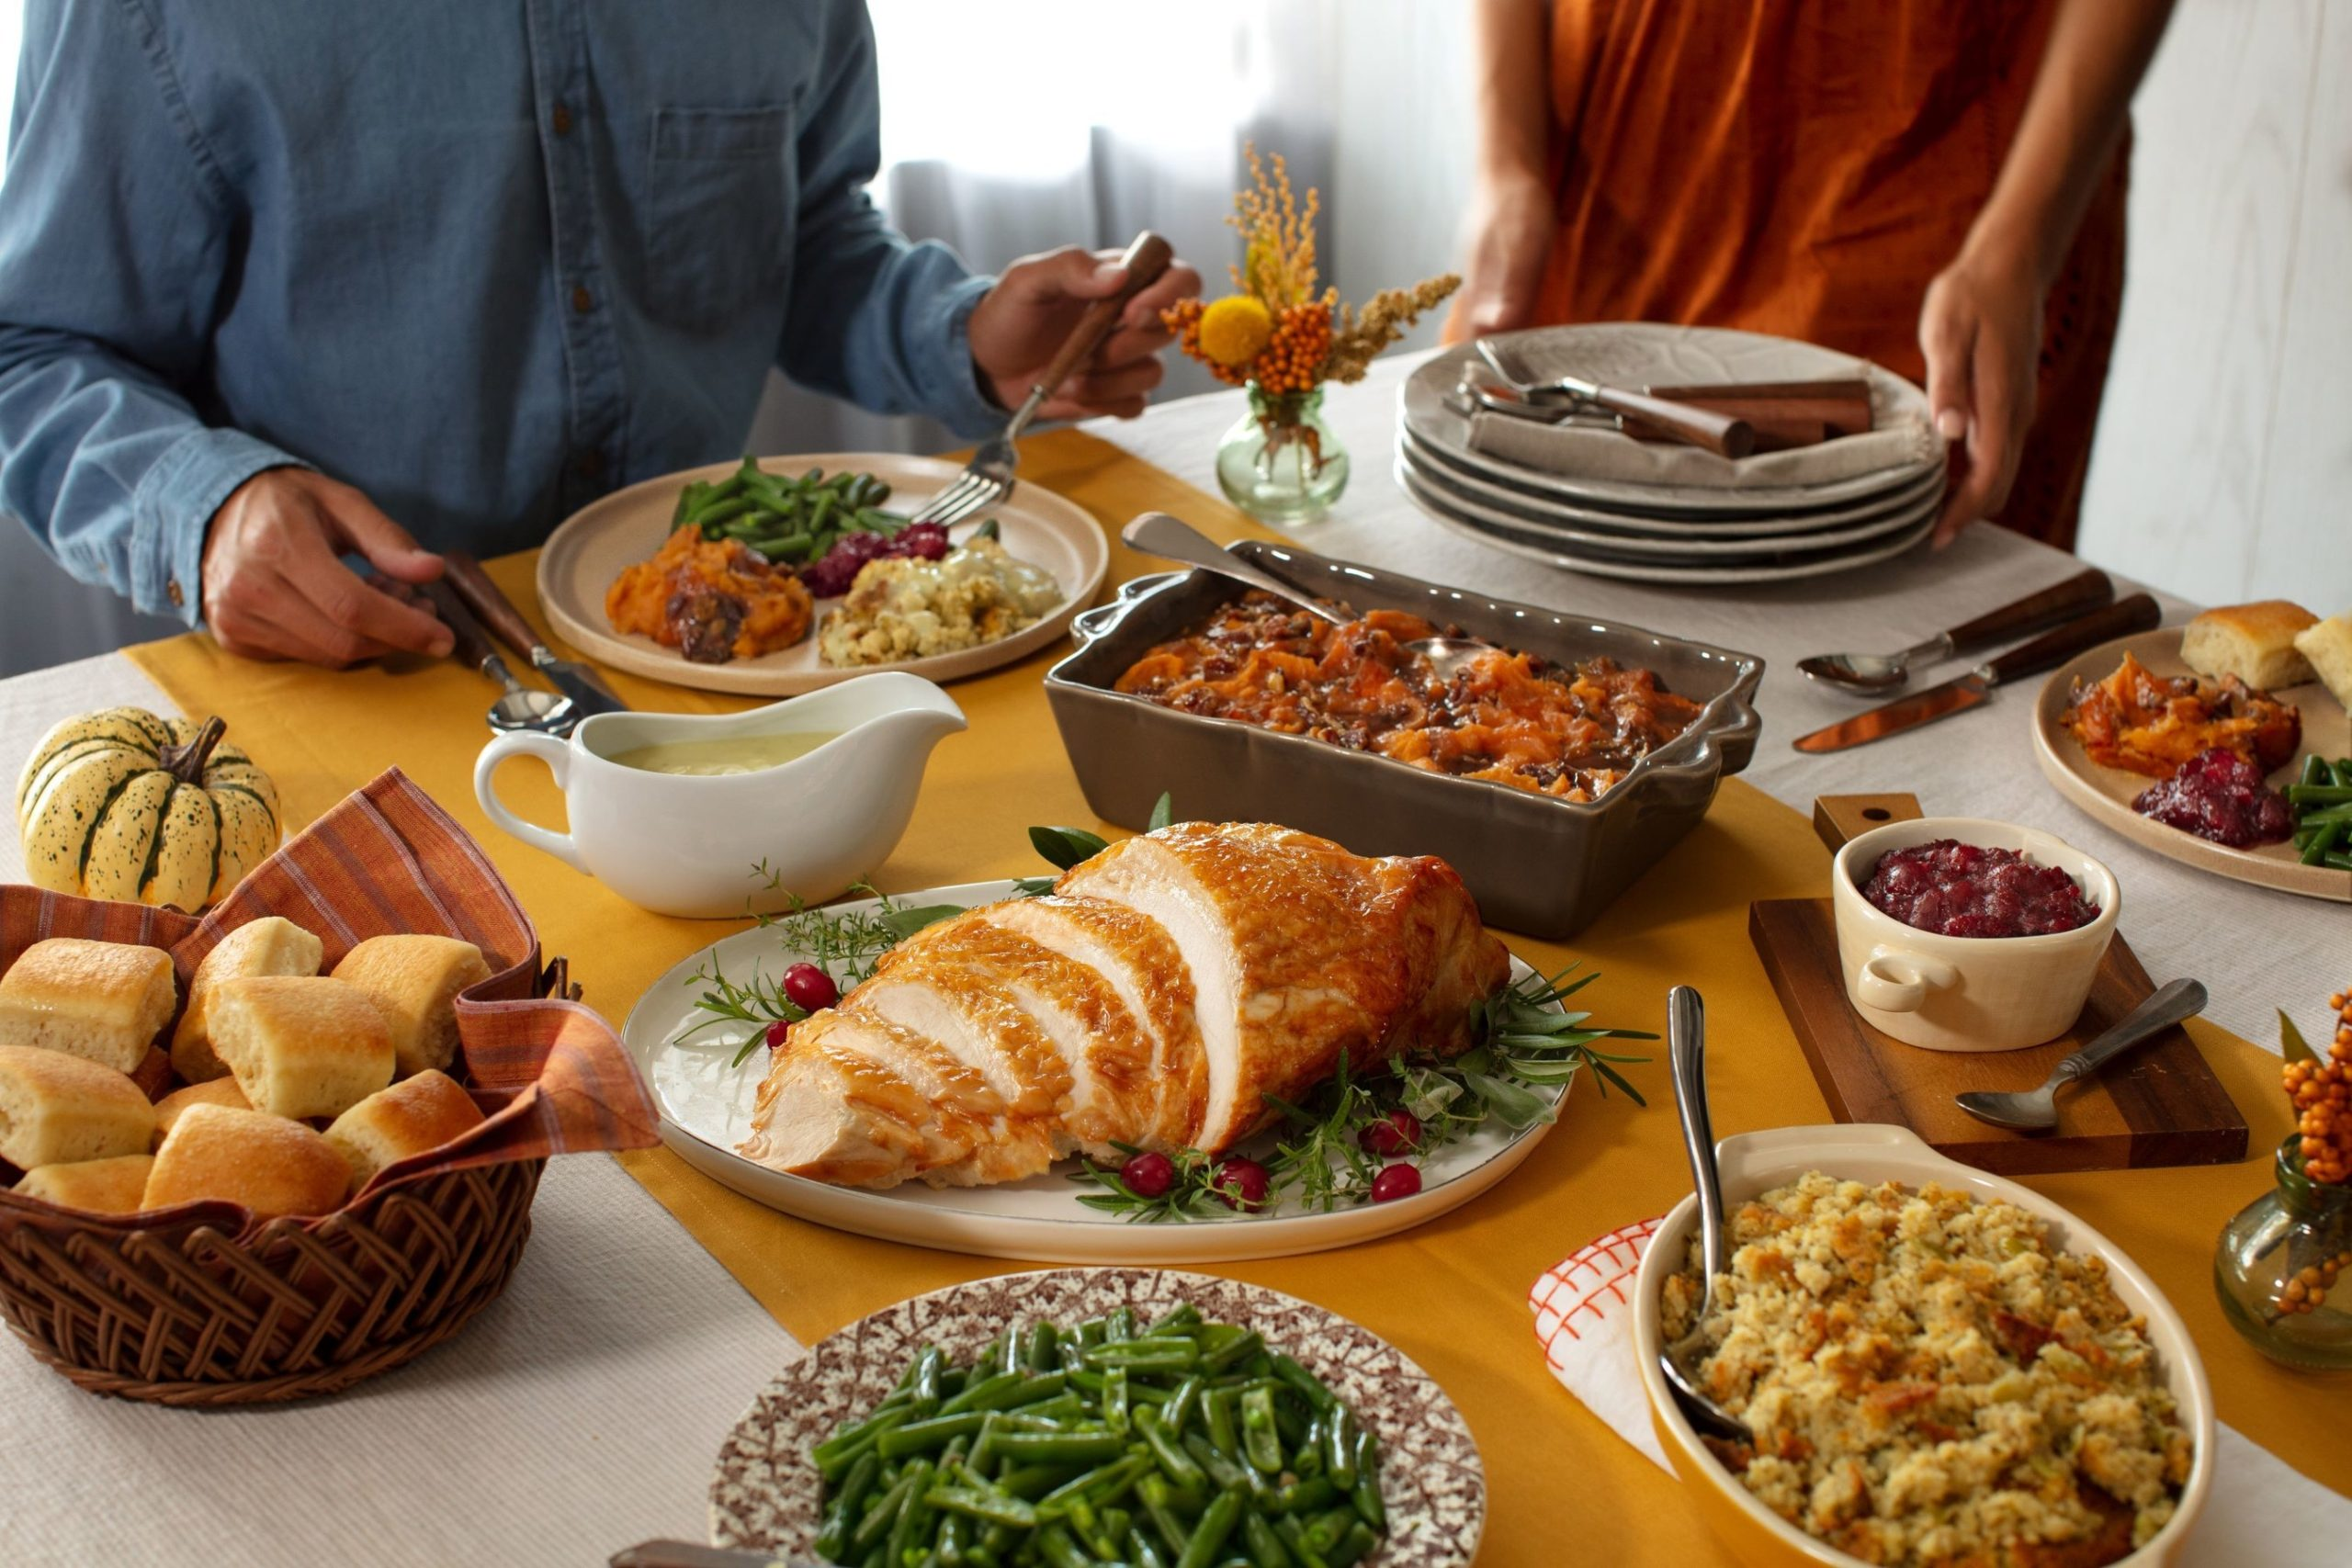 Cracker Barrel Old Country Store Offers New Options To Enjoy Thanksgiving Traditions Safely The Rockwall Times